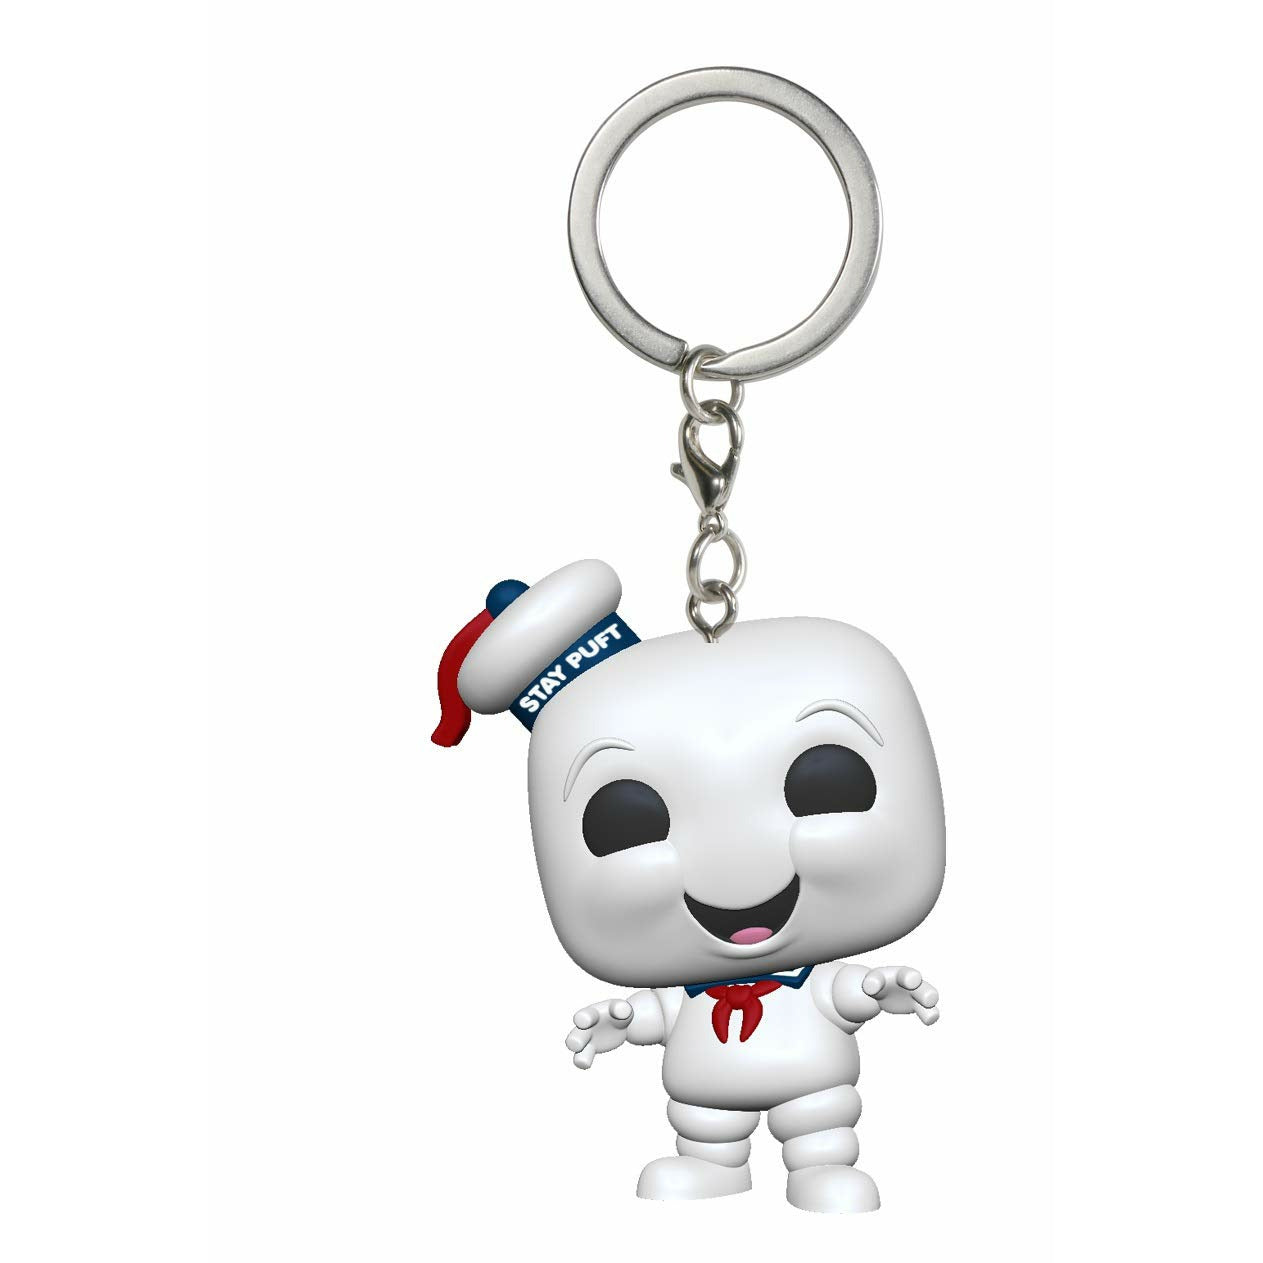 Ghostbusters Stay Puft Marshmallow Man Pocket Pop! Keychain Vinyl Figure